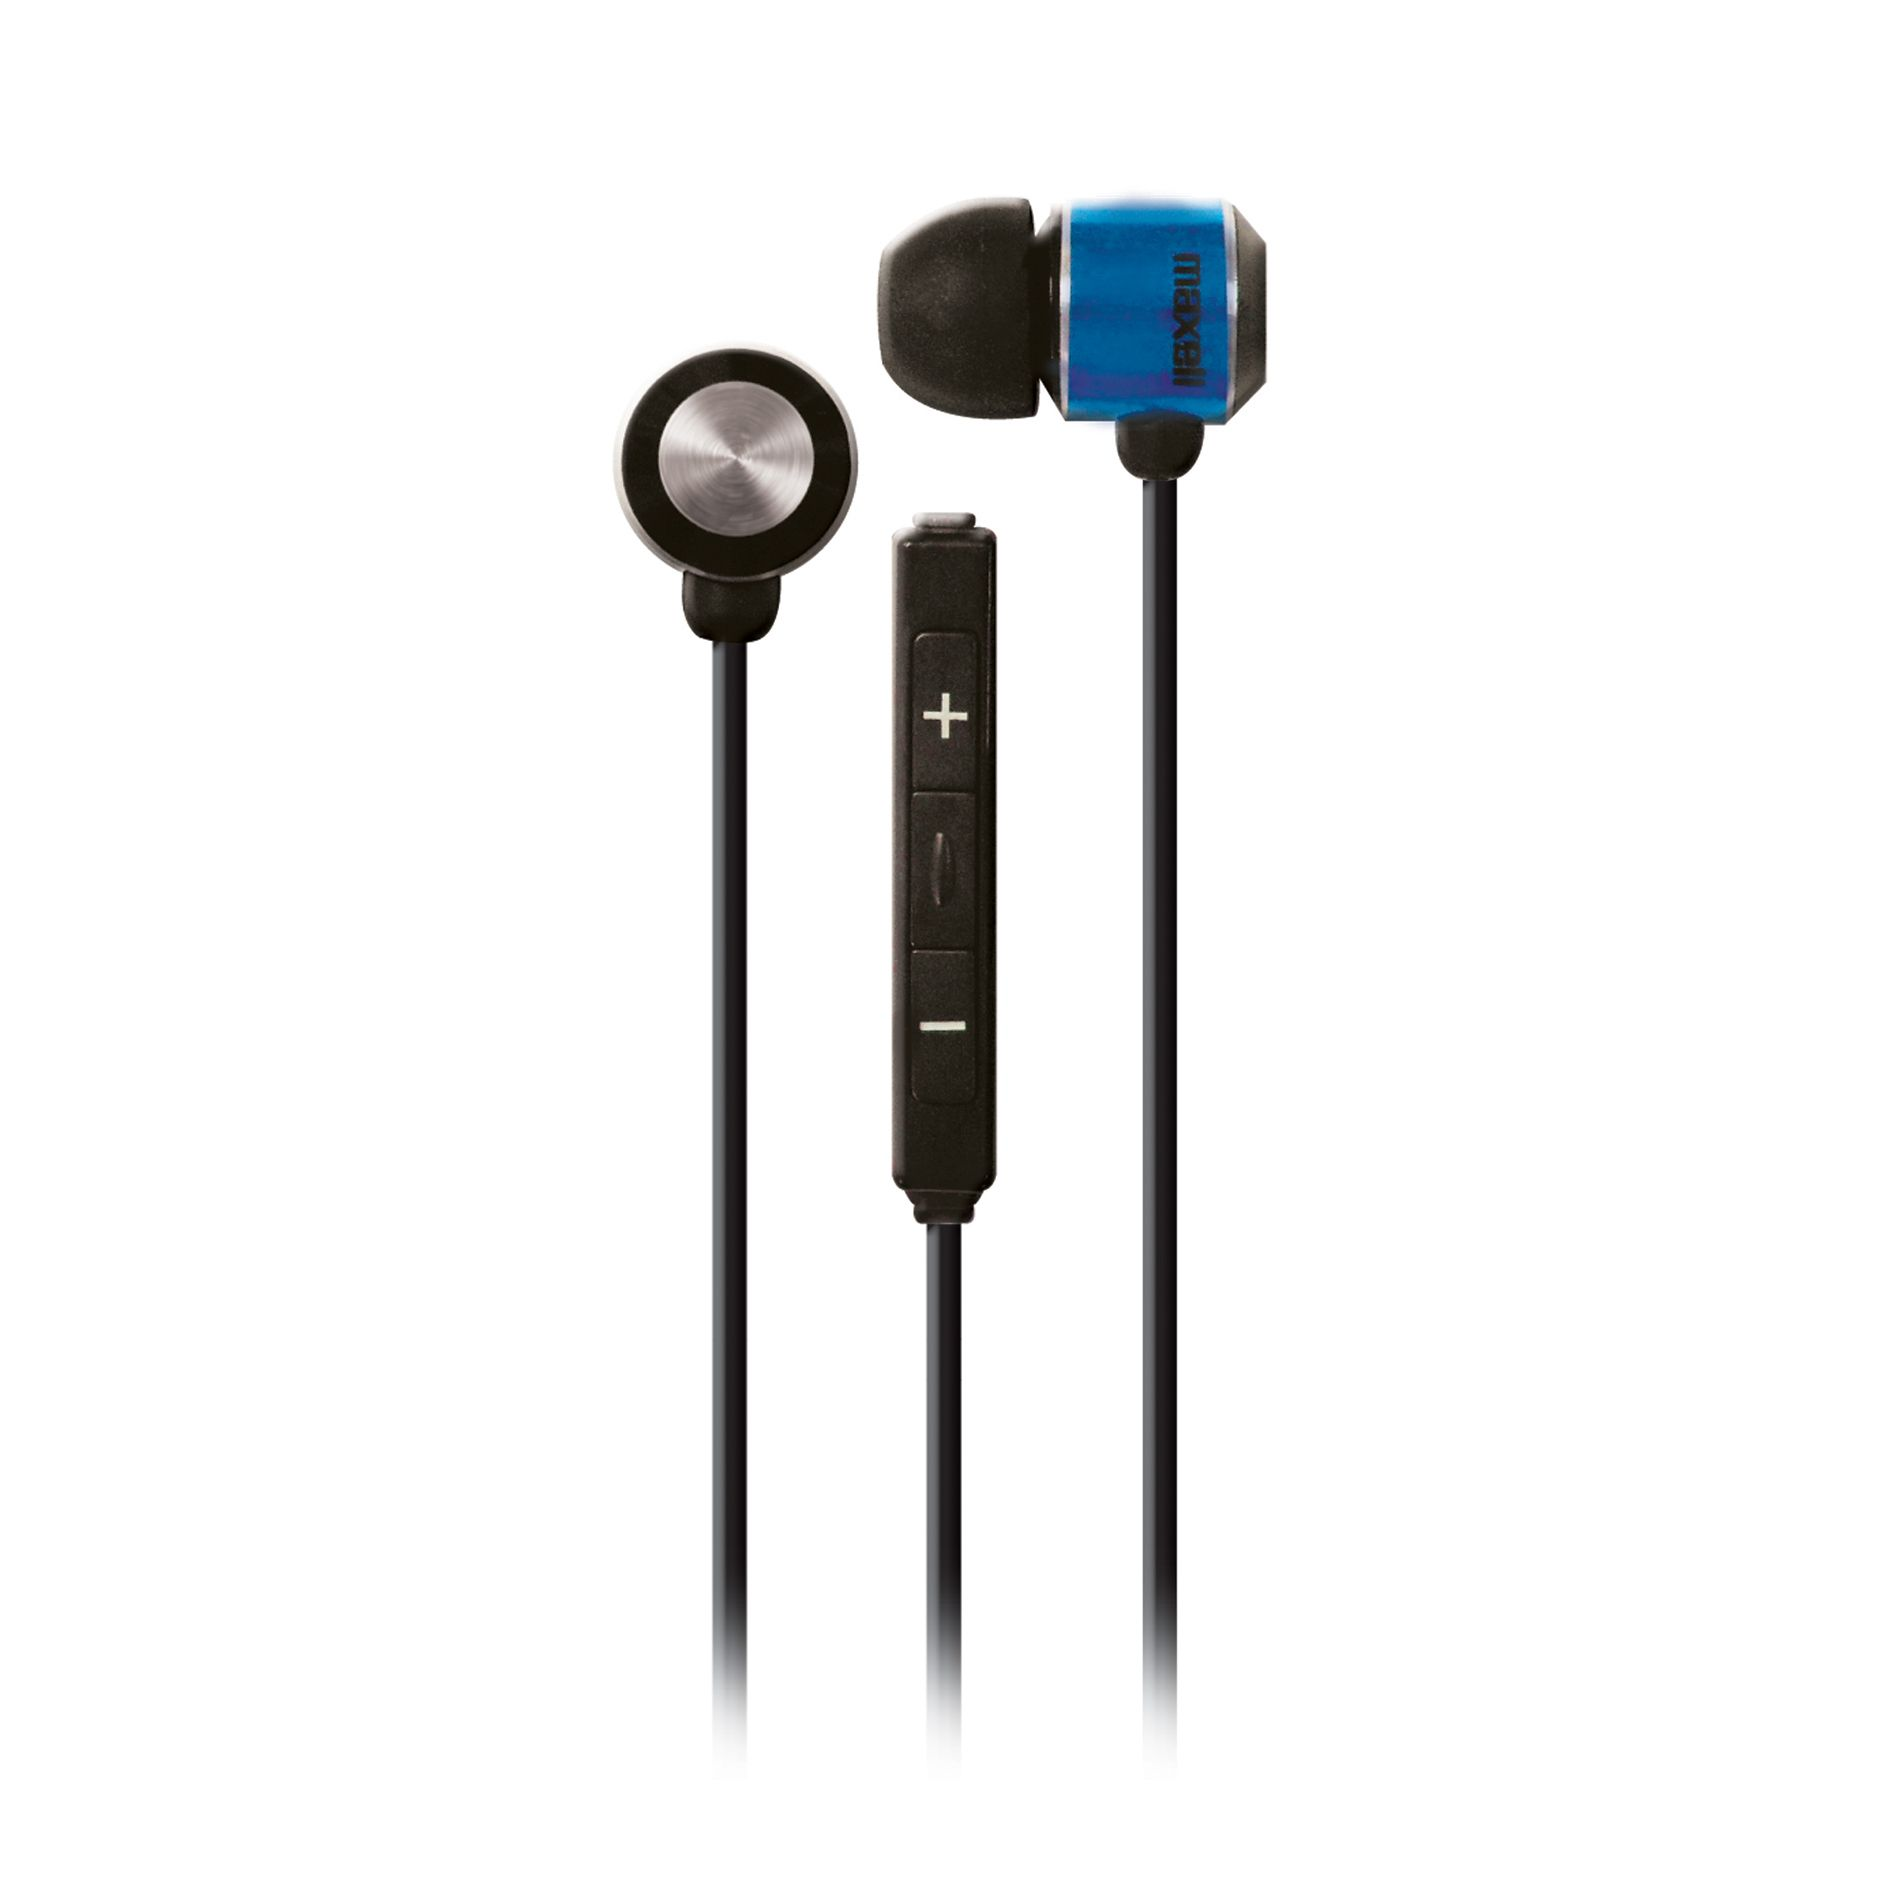 Maxell  iPhone compatible earbud with